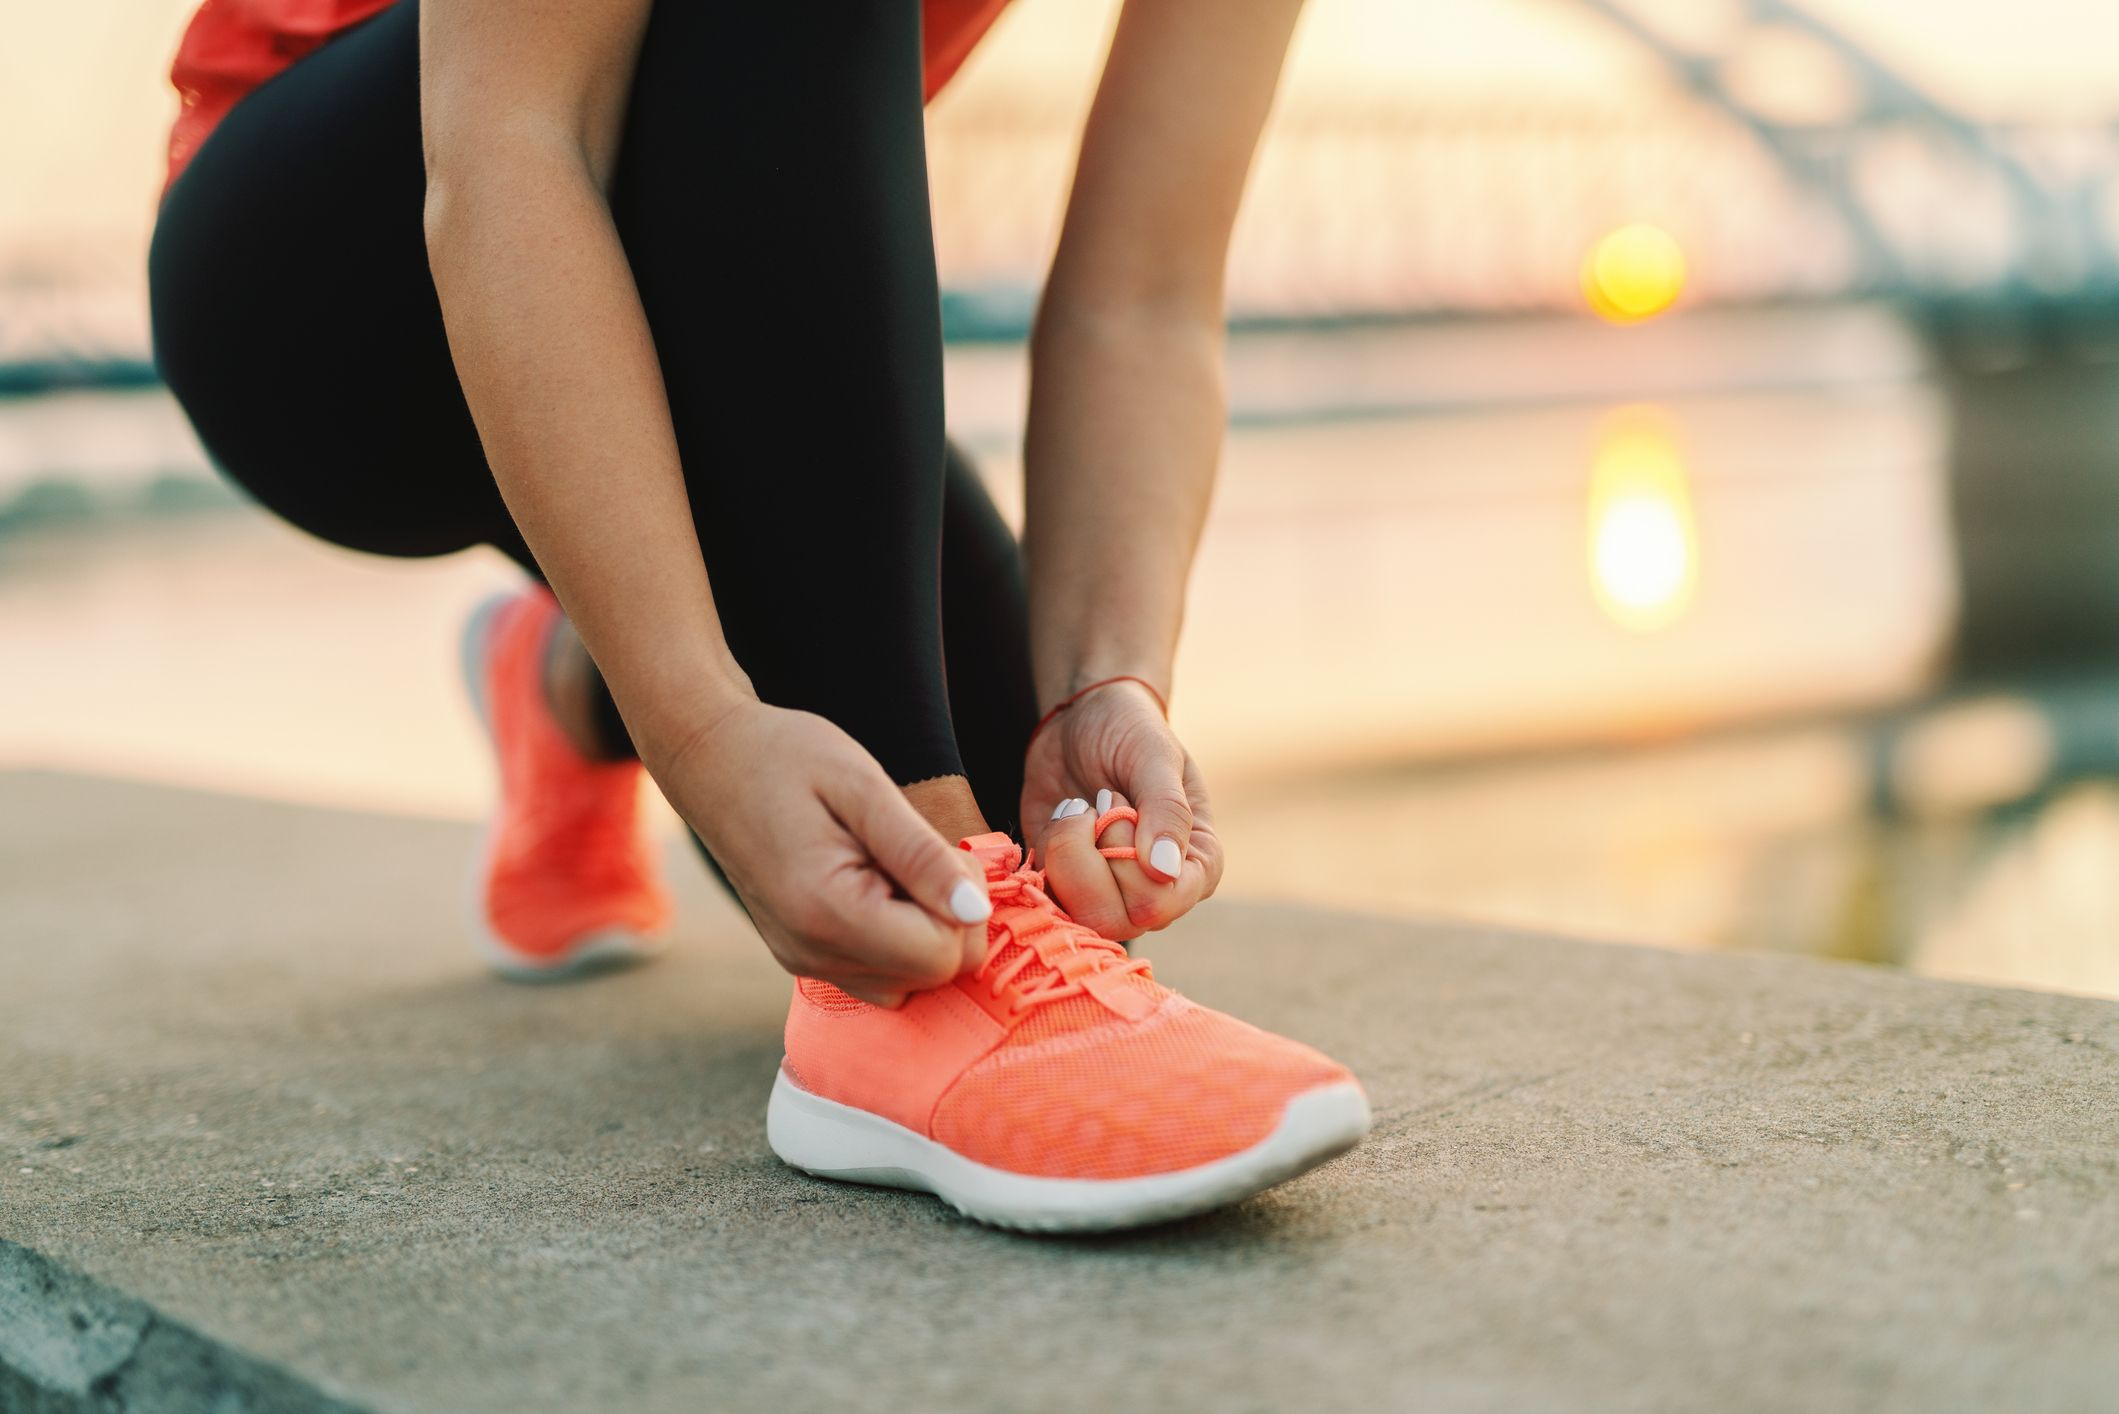 What Is the Best Way to Run and Walk Without Pain?